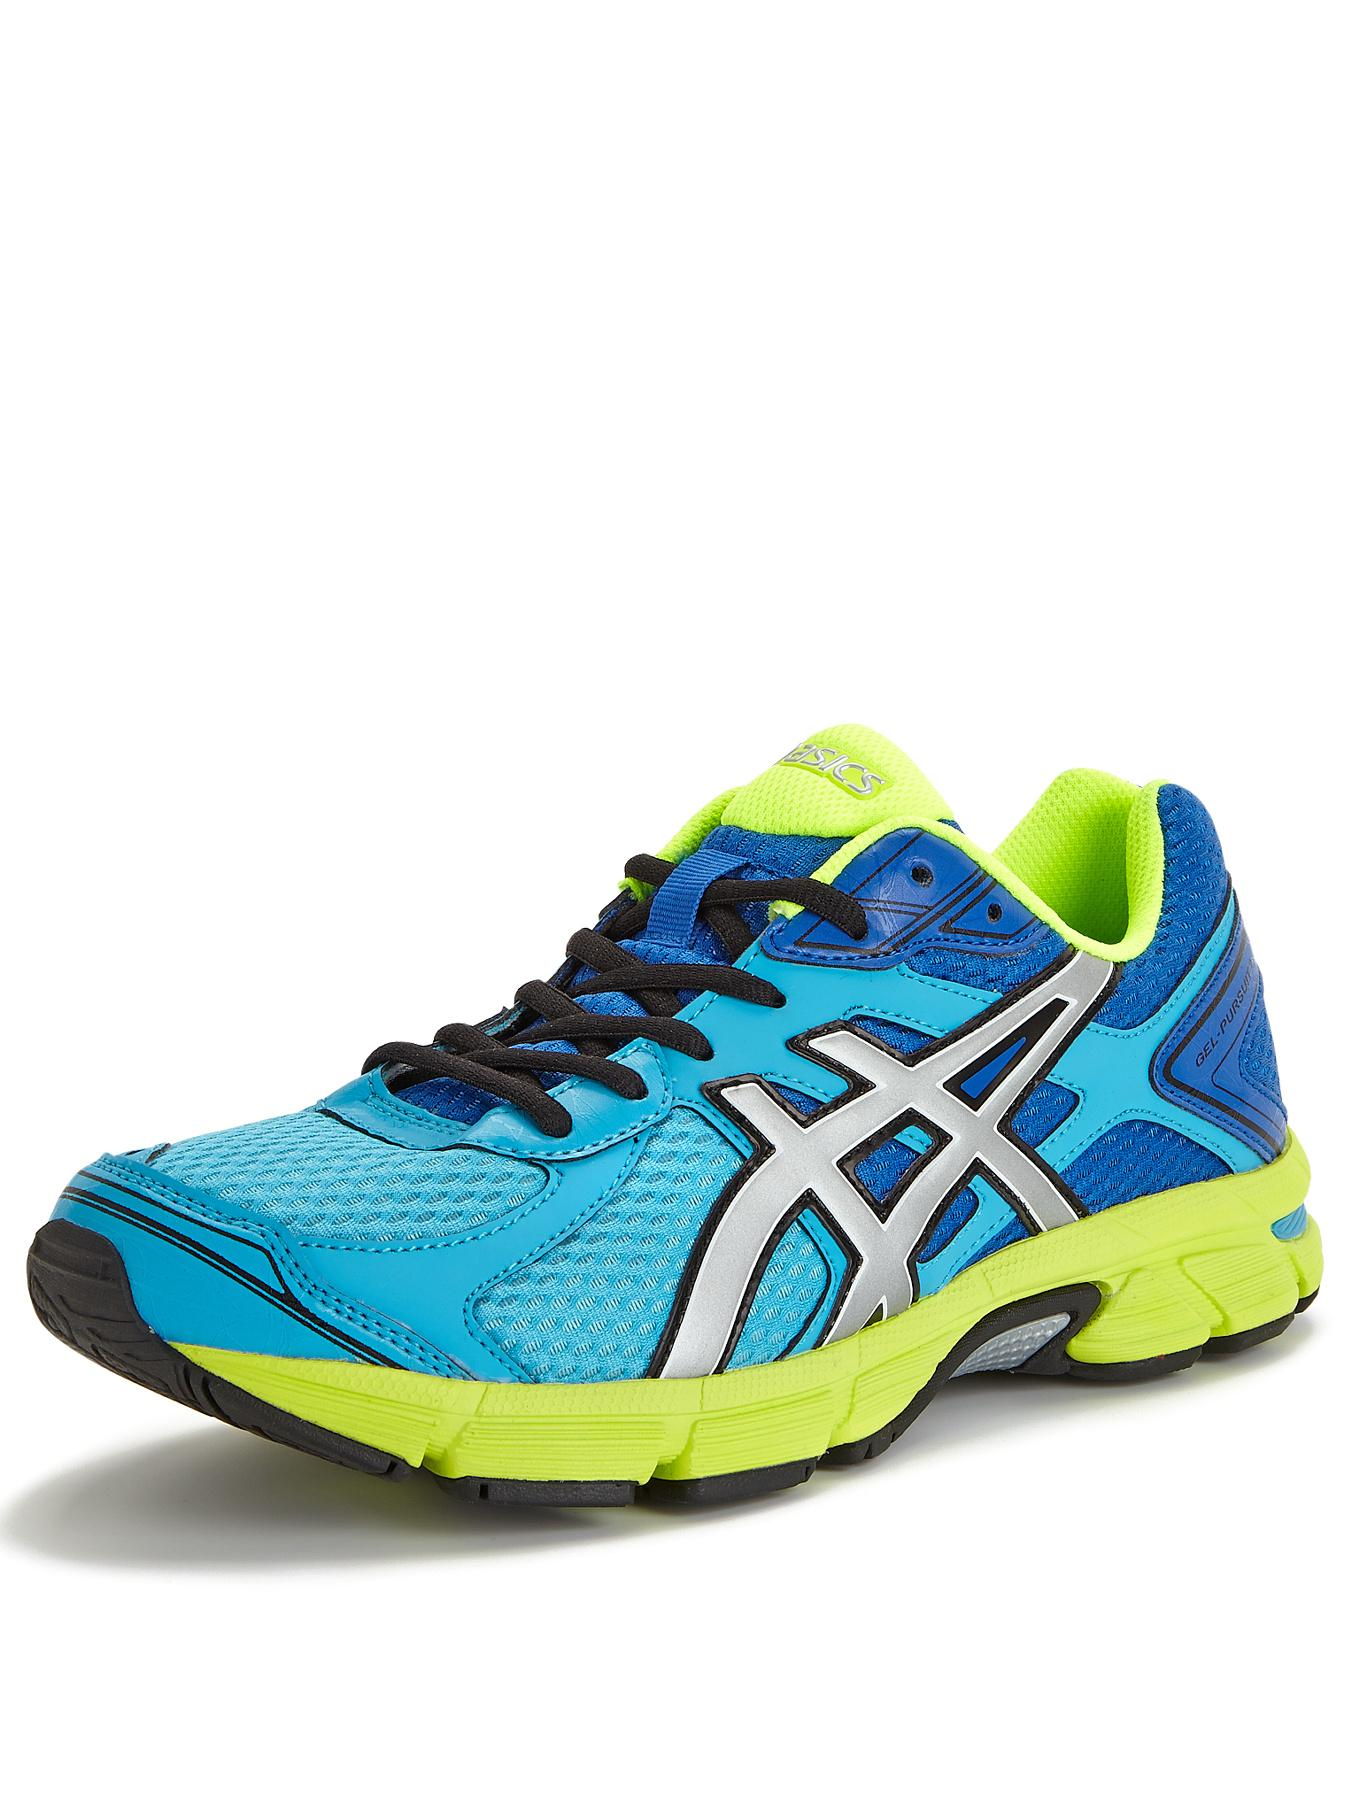 Asics Gel- Pursuit 2 Mens Trainers - Blue, Blue